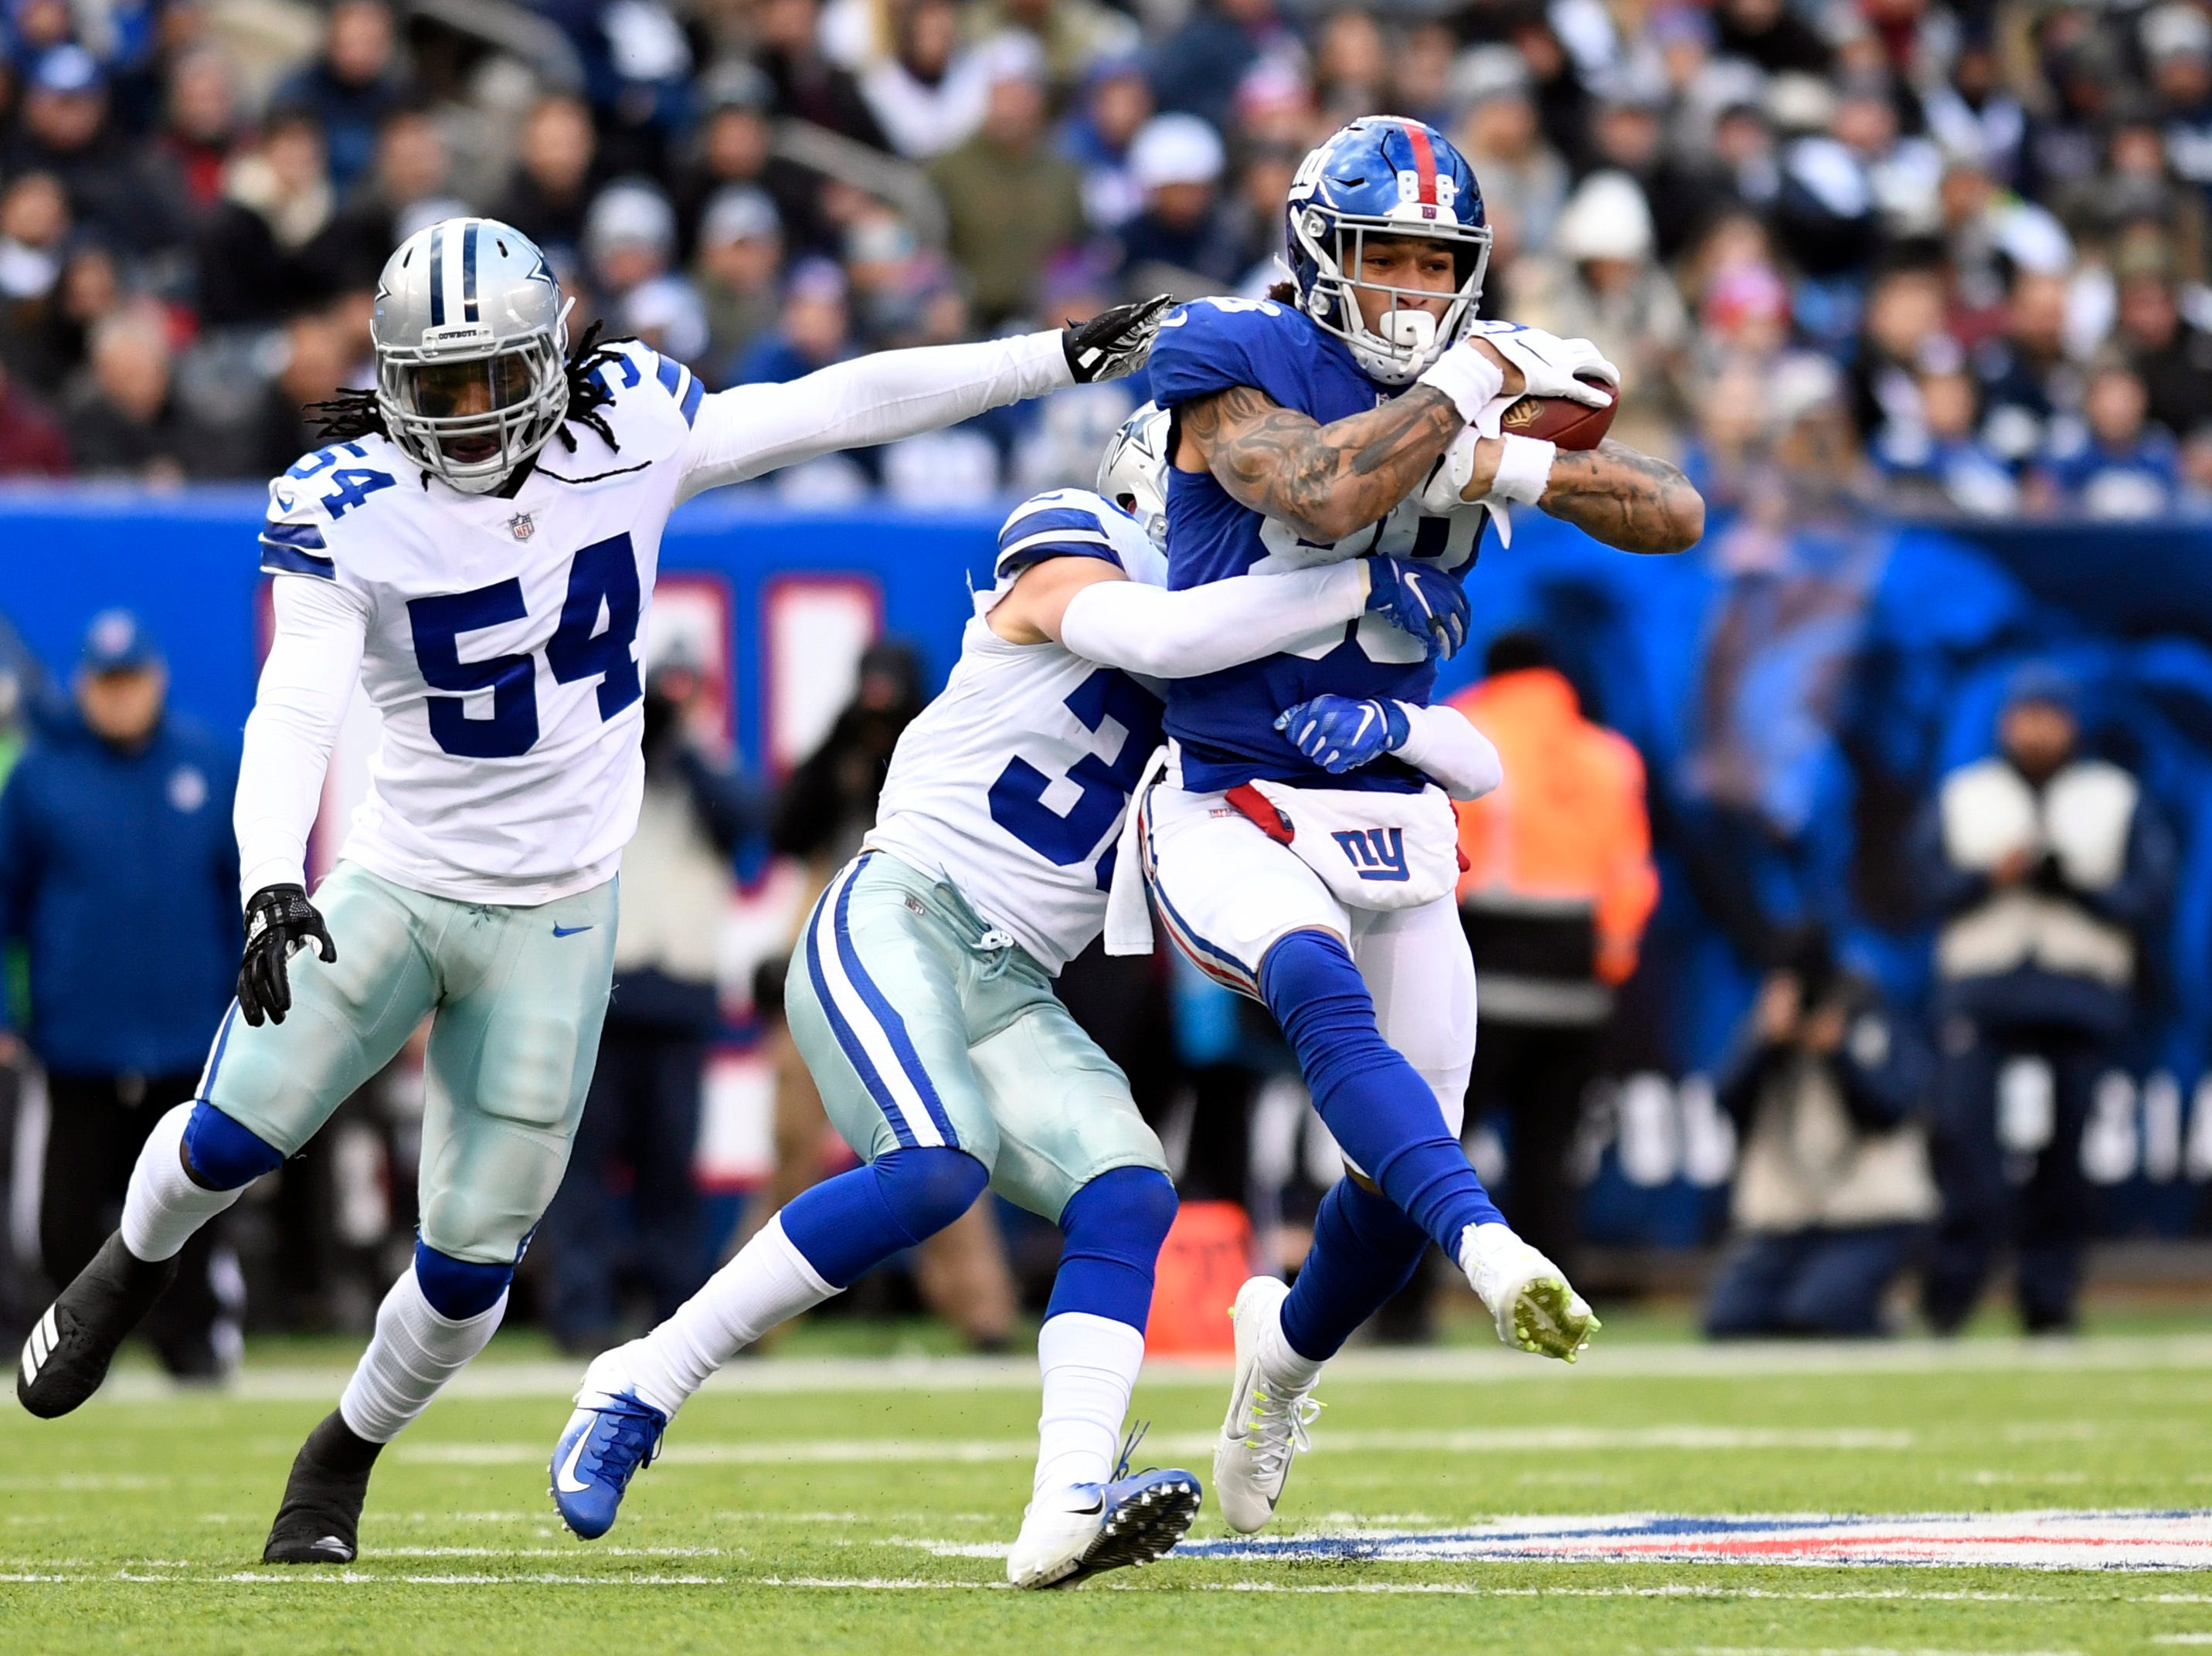 New York Giants tight end Evan Engram (88) completes a pass with pressure from the Cowboys defense. The New York Giants face the Dallas Cowboys in the last regular season game on Sunday, Dec. 30, 2018, in East Rutherford.